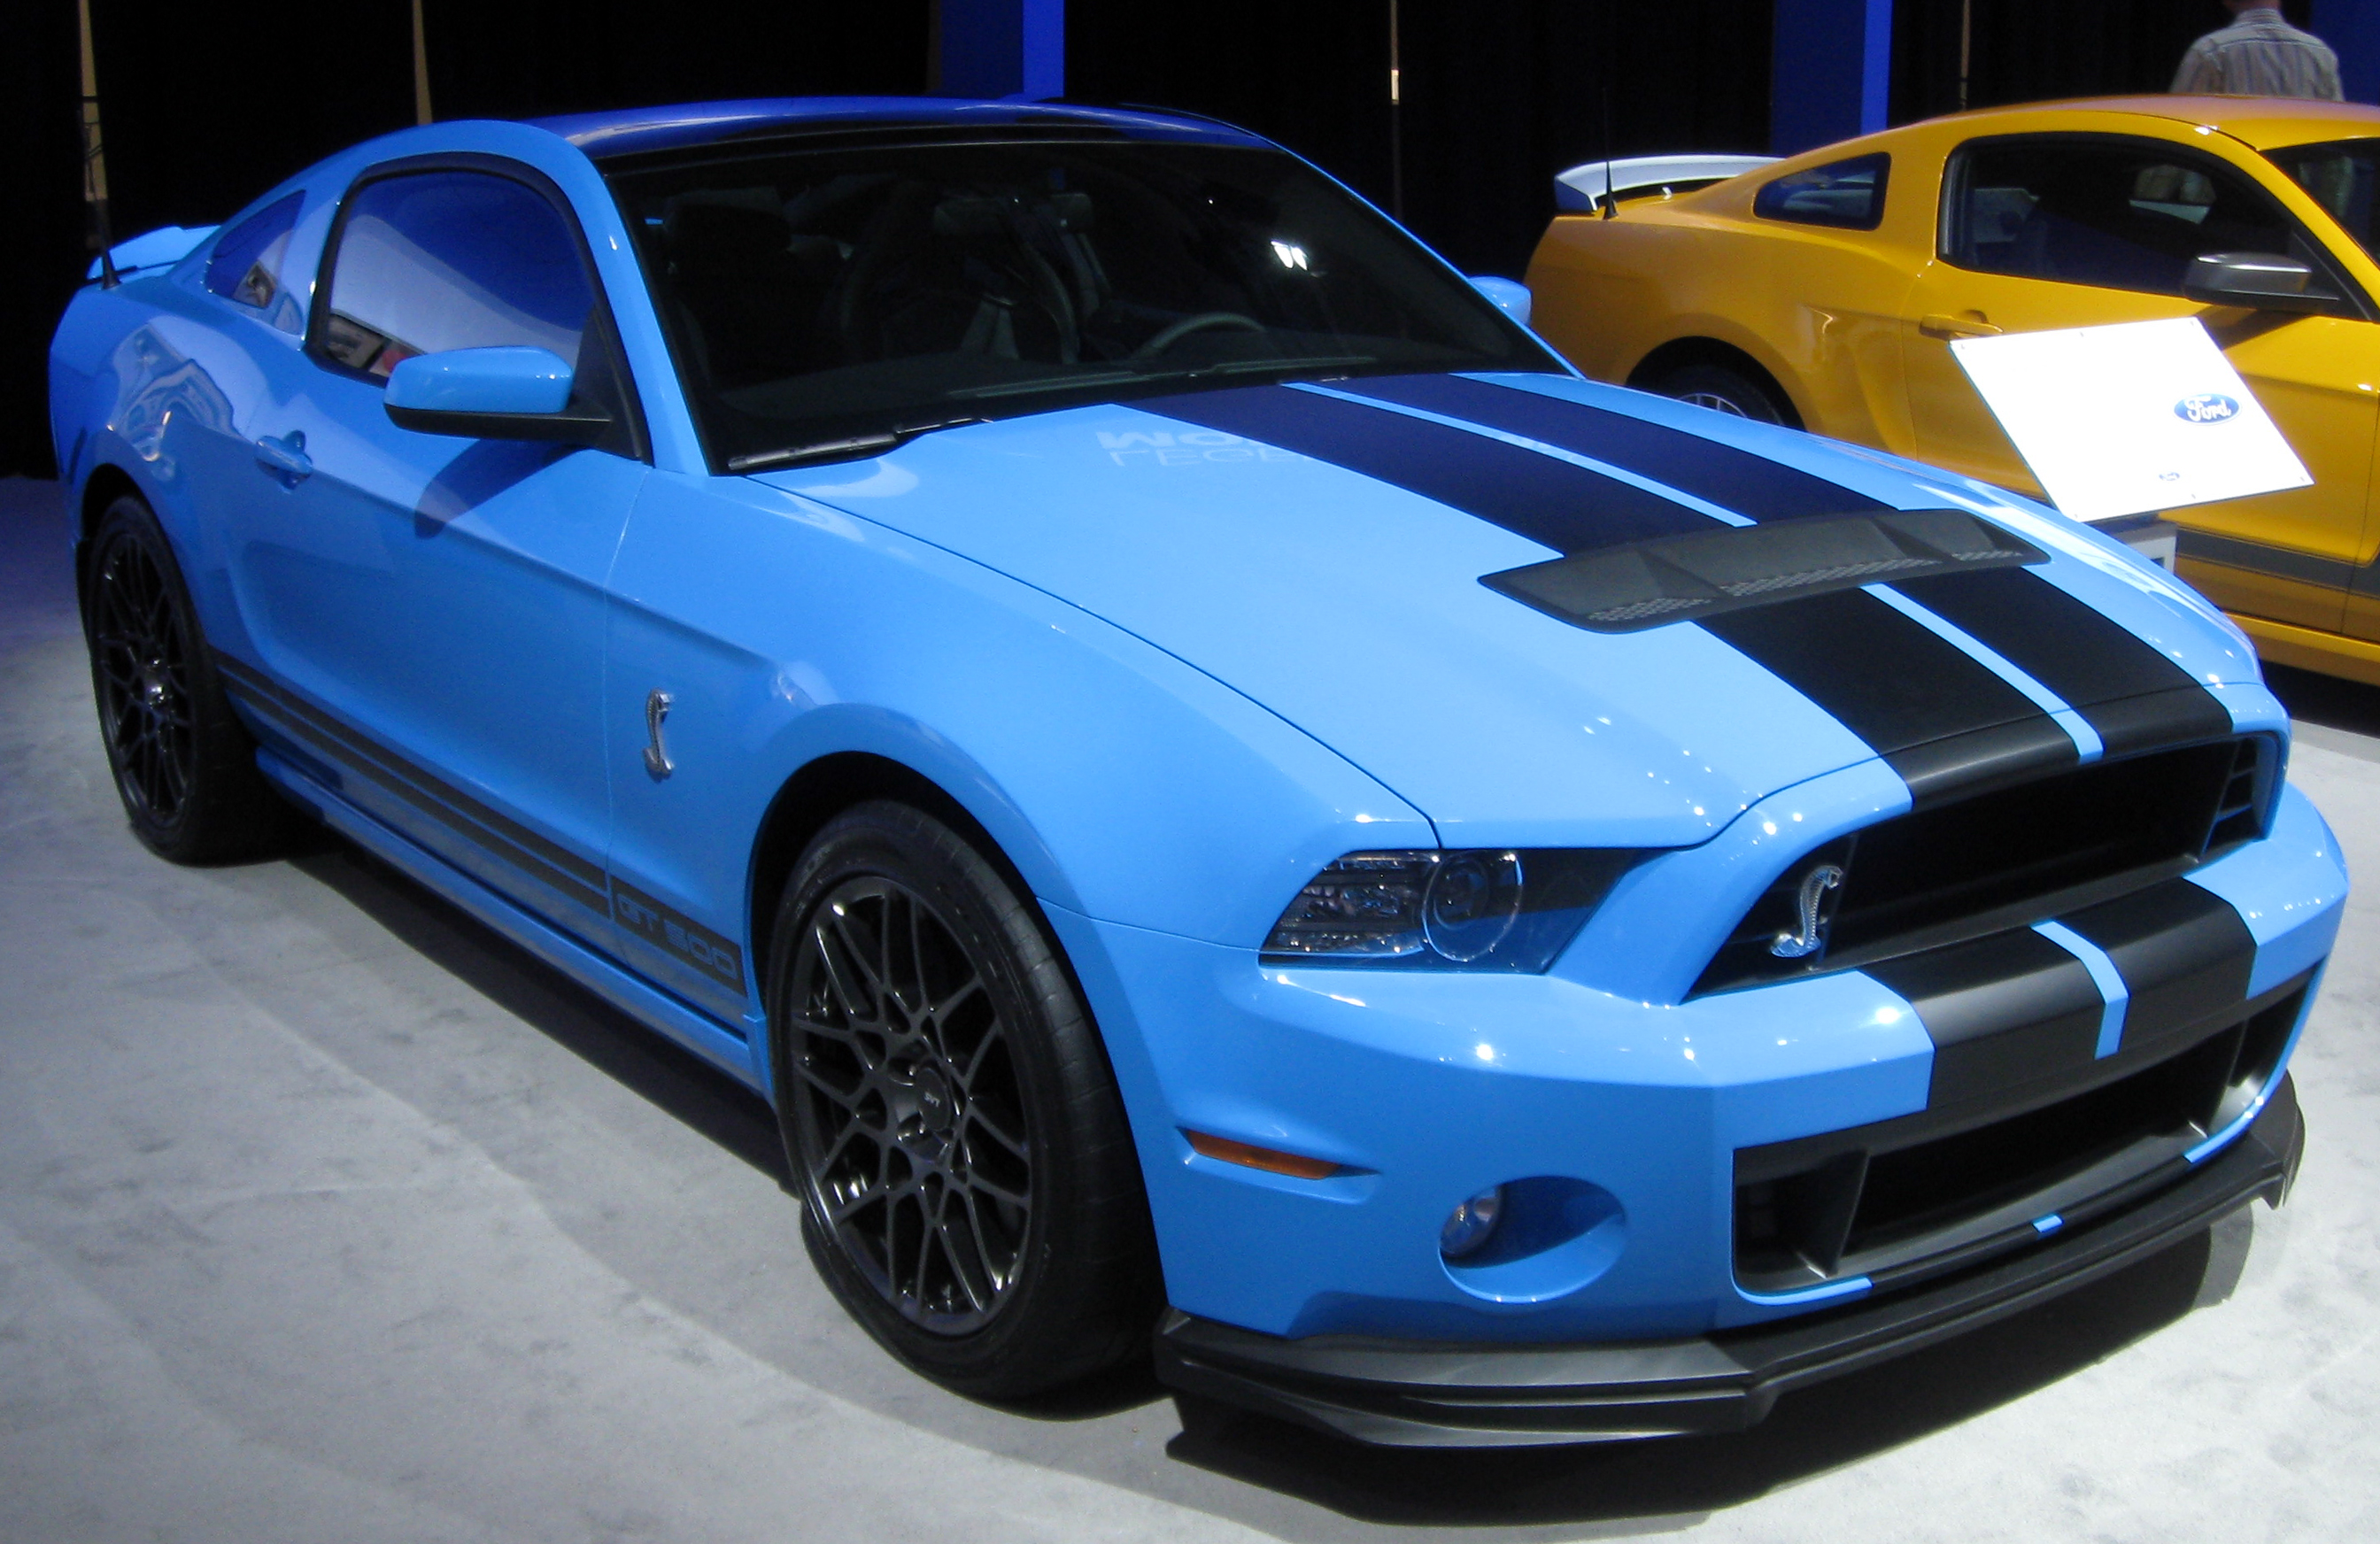 file 2013 ford mustang gt500 2012 dc jpg wikimedia commons. Black Bedroom Furniture Sets. Home Design Ideas